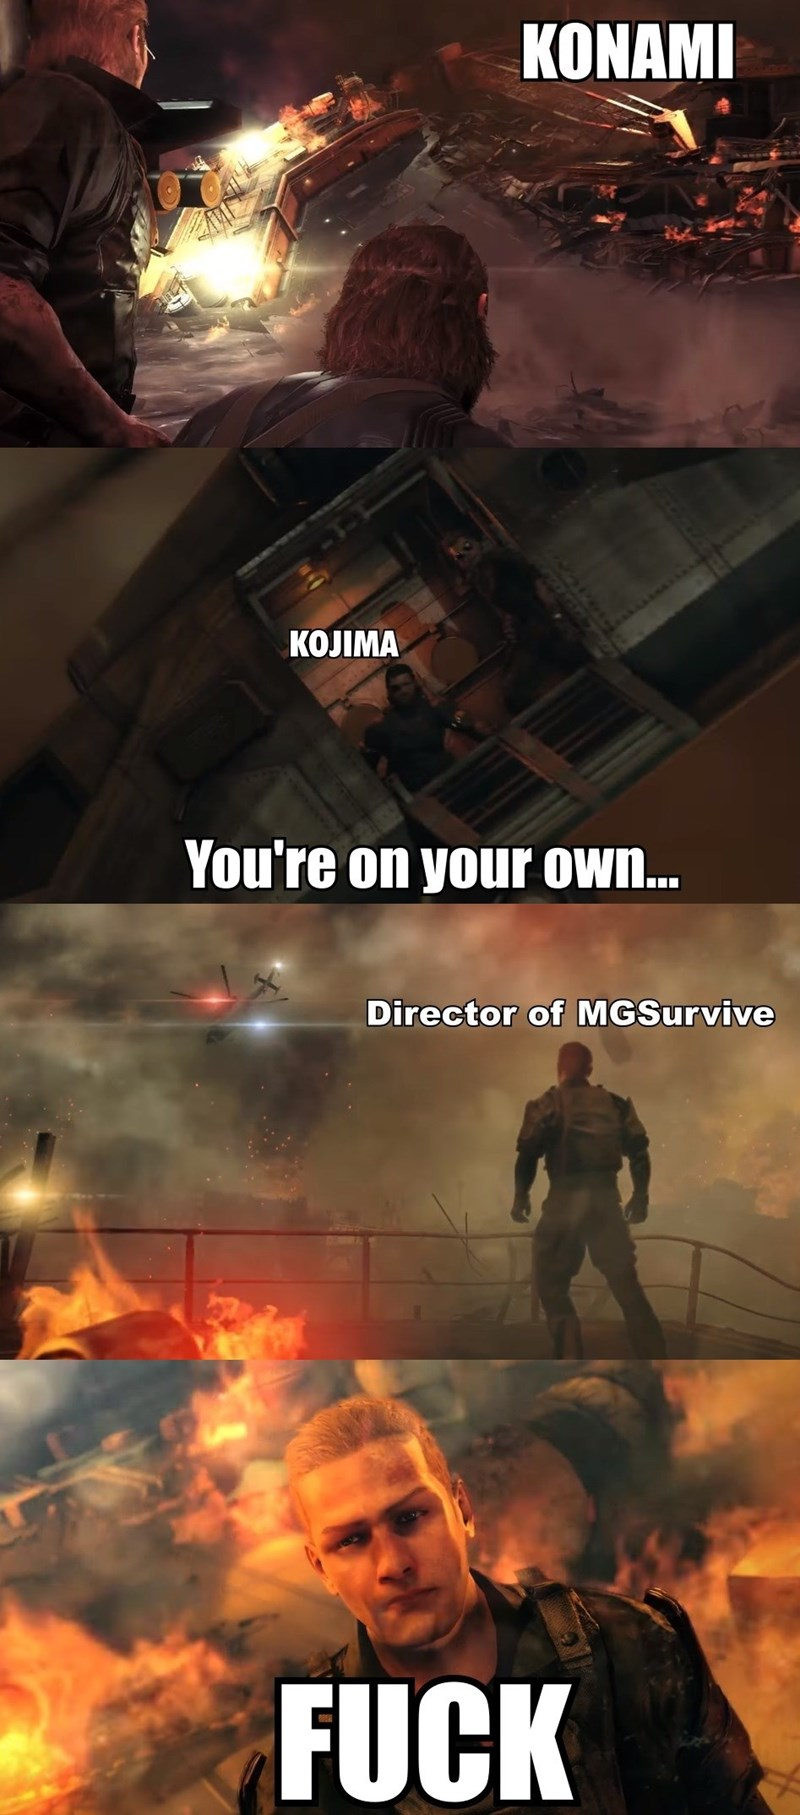 people-out-there-thinking-this-after-metal-gear-survive-trailer